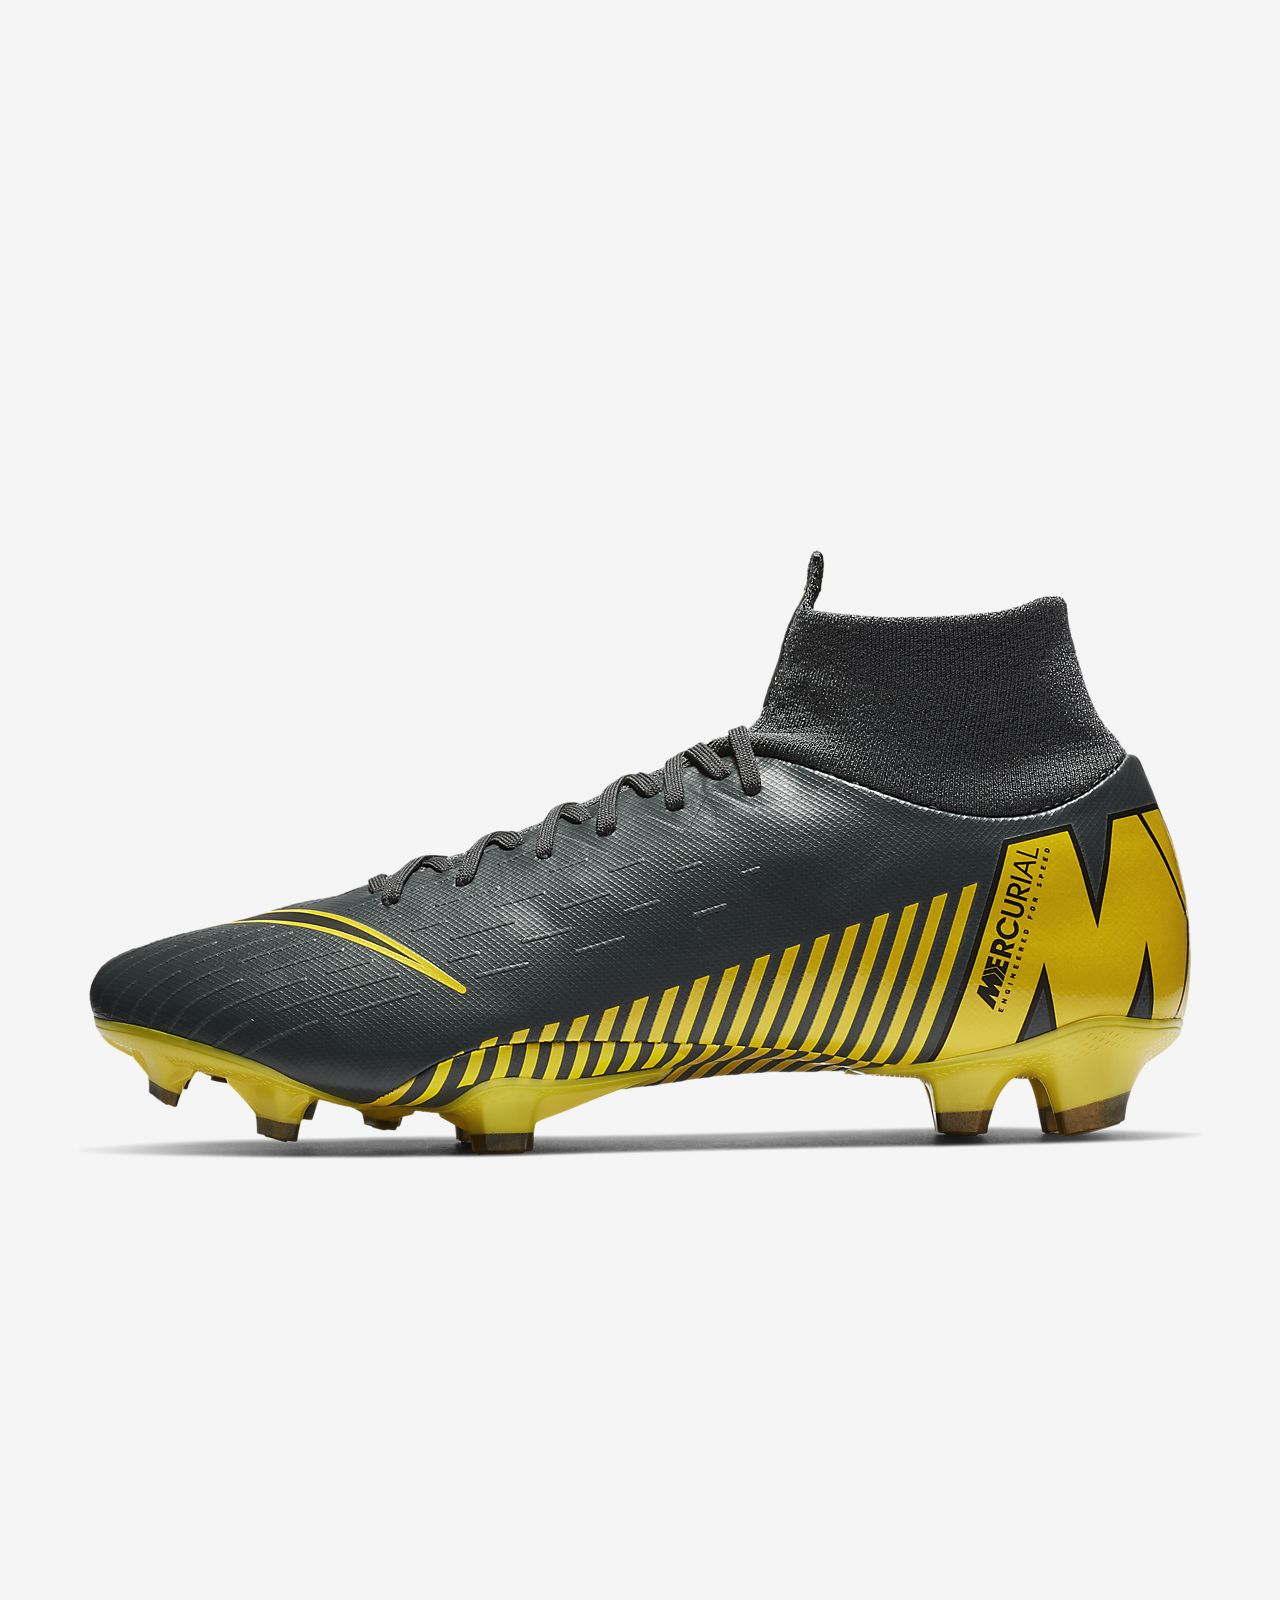 new products 6e13e c79c7 ... Nike Superfly 6 Pro FG Firm-Ground Football Boot